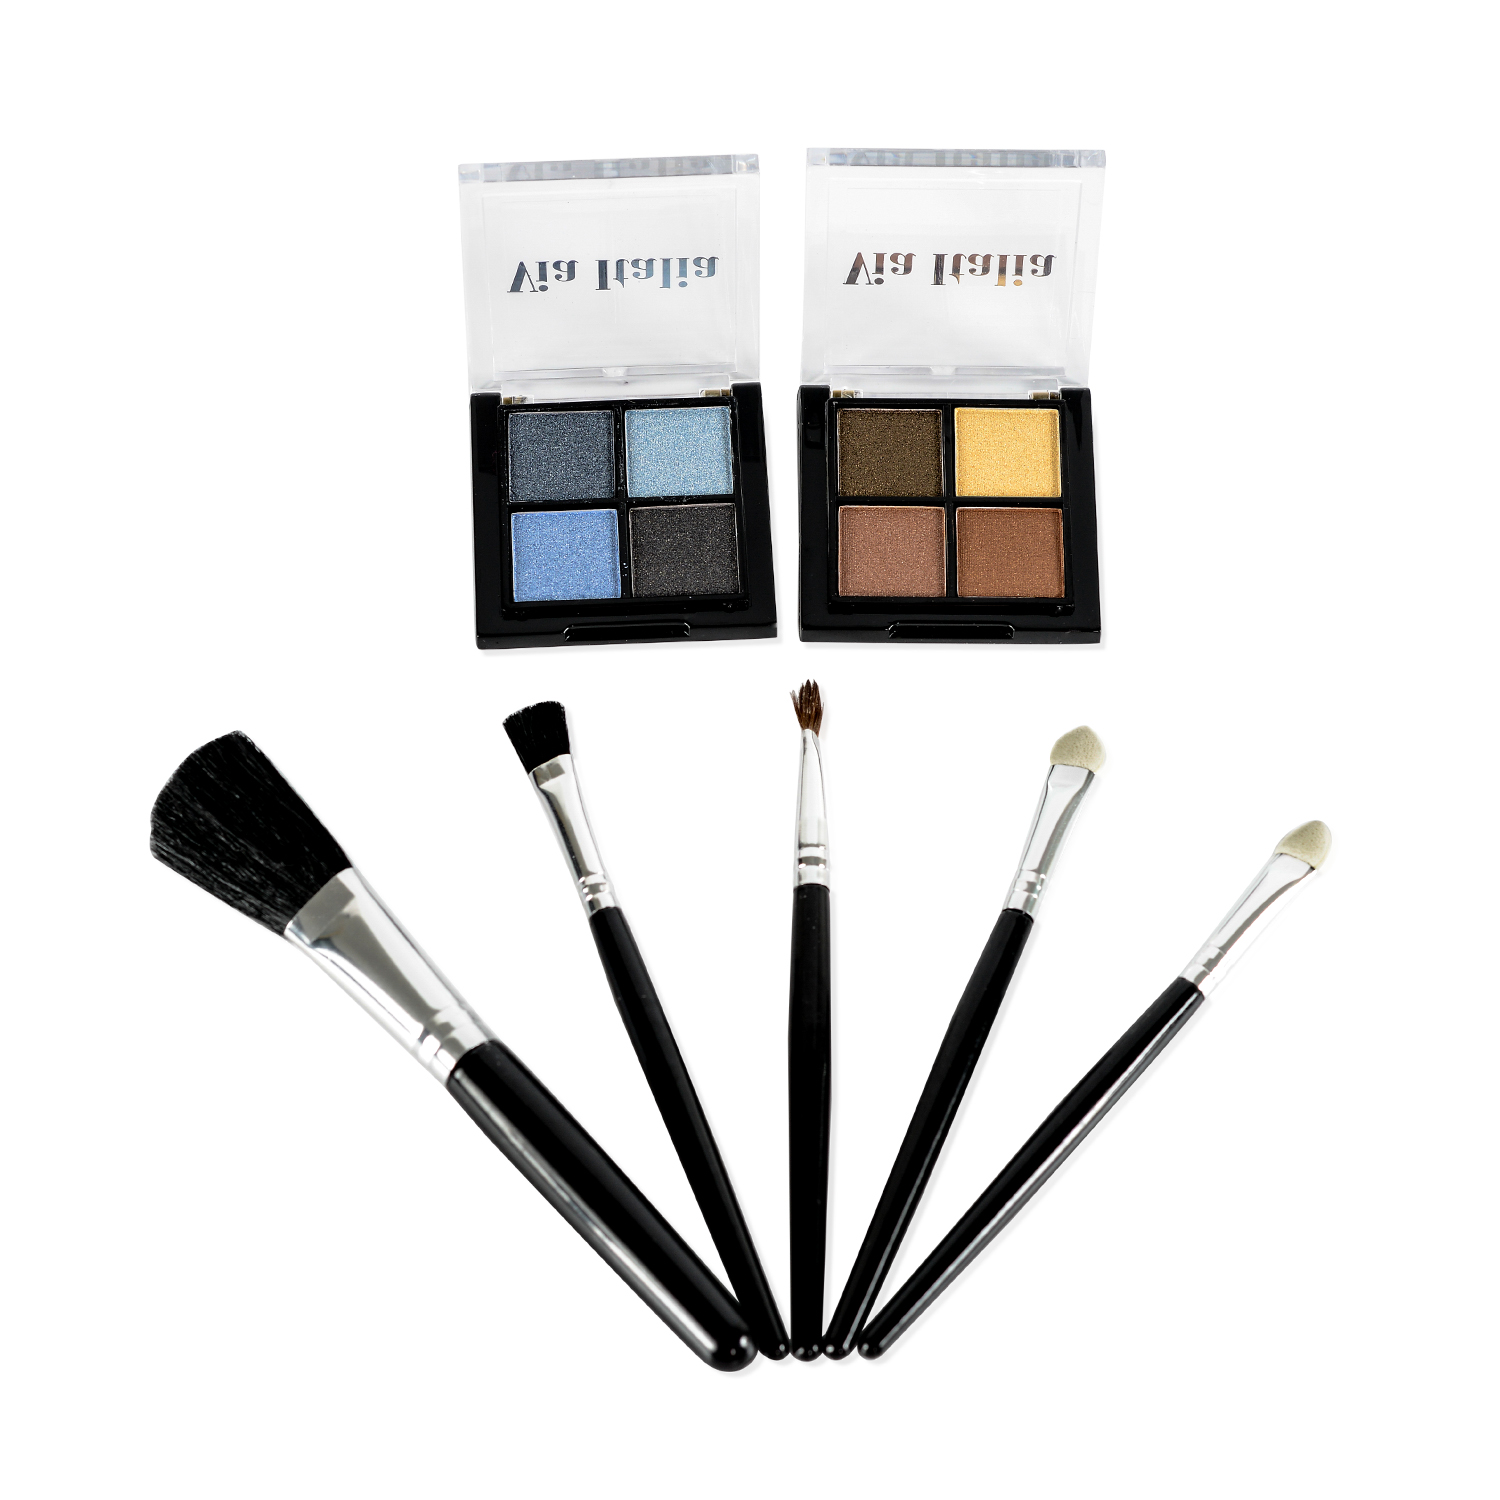 Via Italia Set of 2 Eyeshadows and Set of 5 Brushes - Natural, Midnight